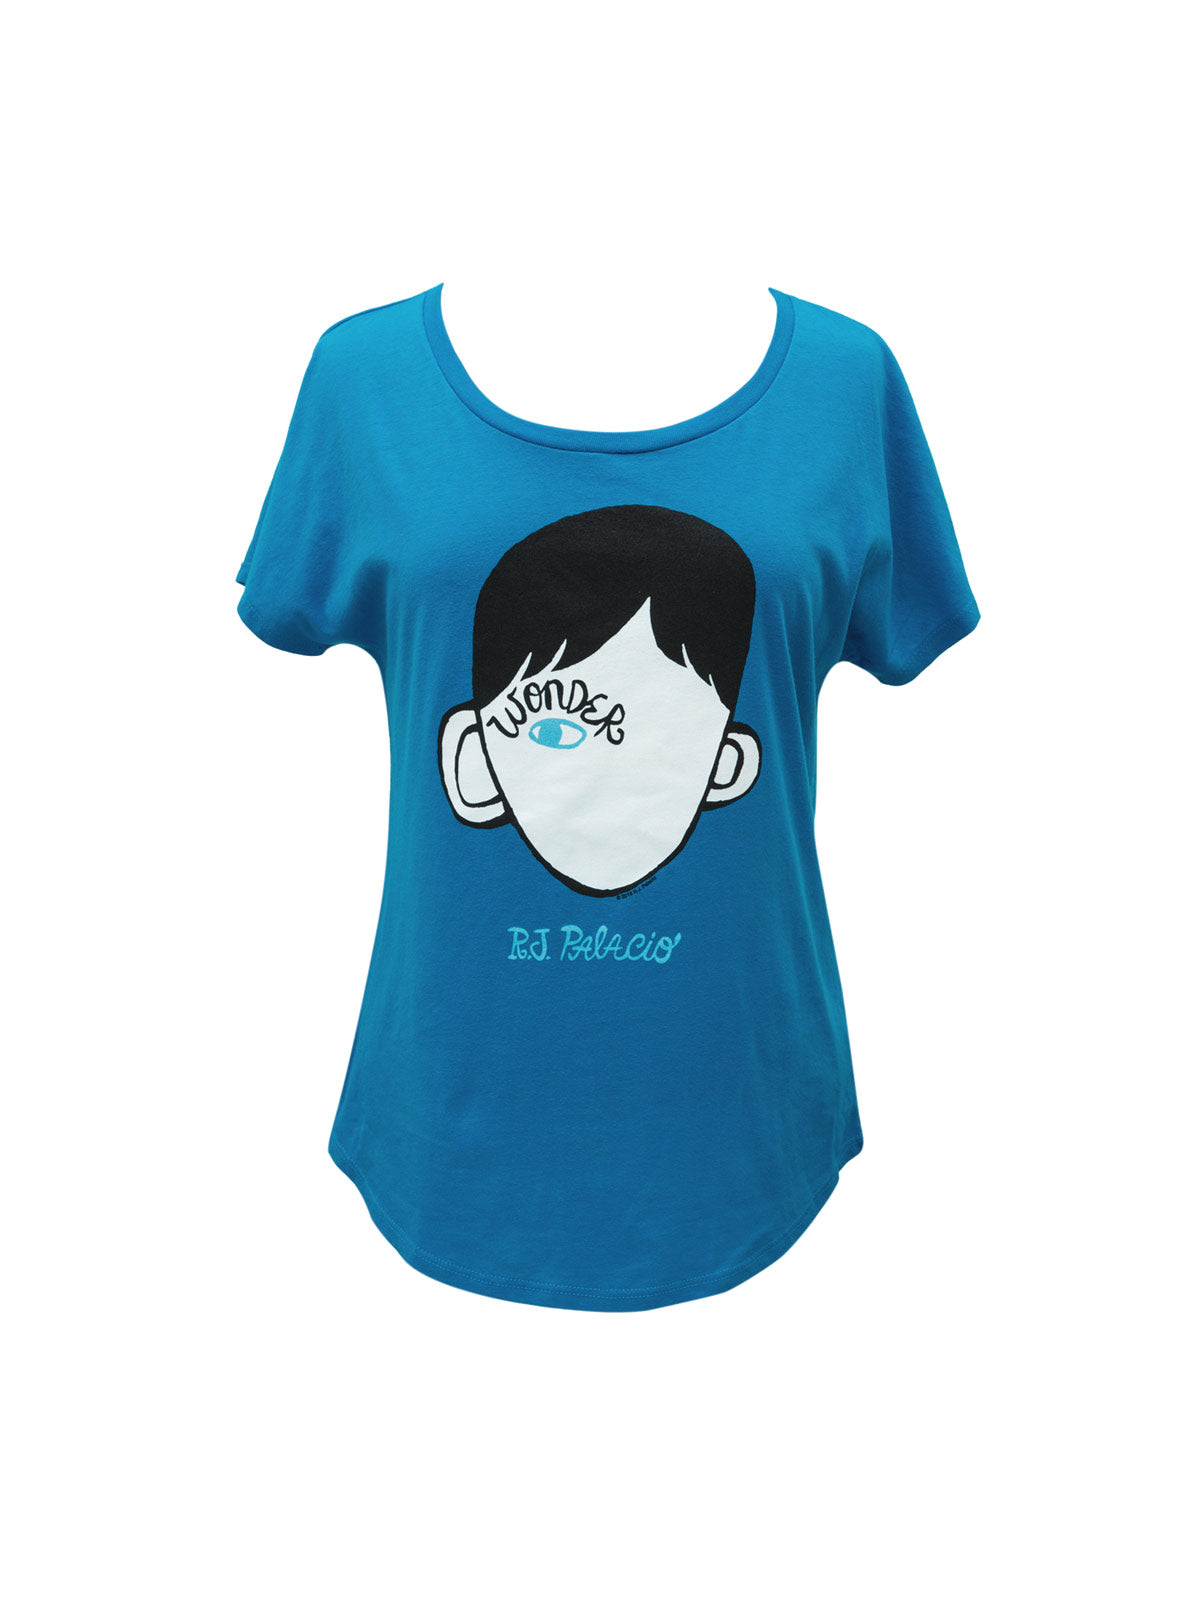 Wonder by R. J. Palacio Book Cover Tees, Pin, Tote, Pouch Collection